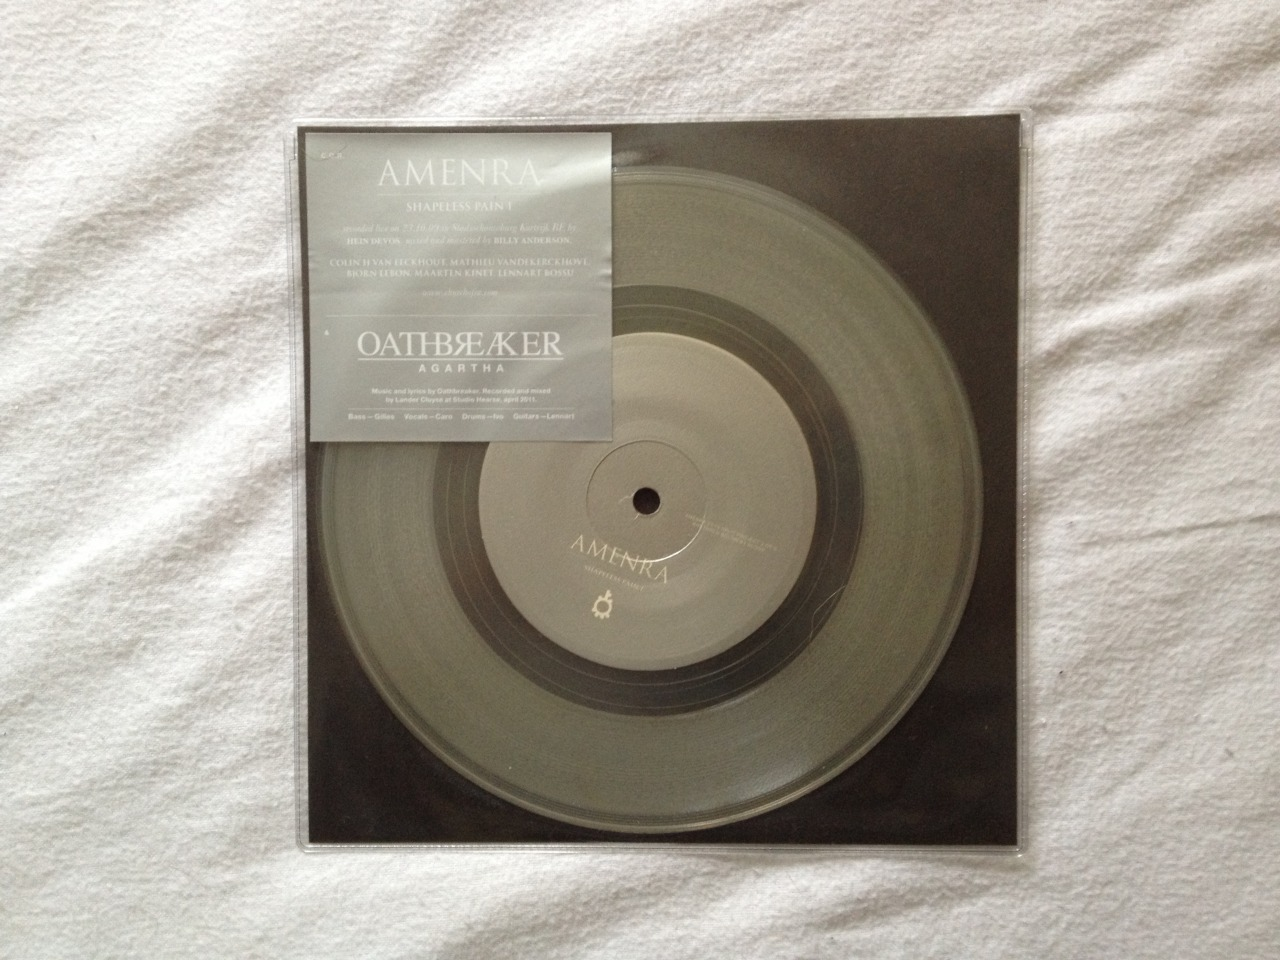 fleshin2gear:  Amenra / Oathbreaker - Brethren Bound By Blood 3/3 (Clear 500)